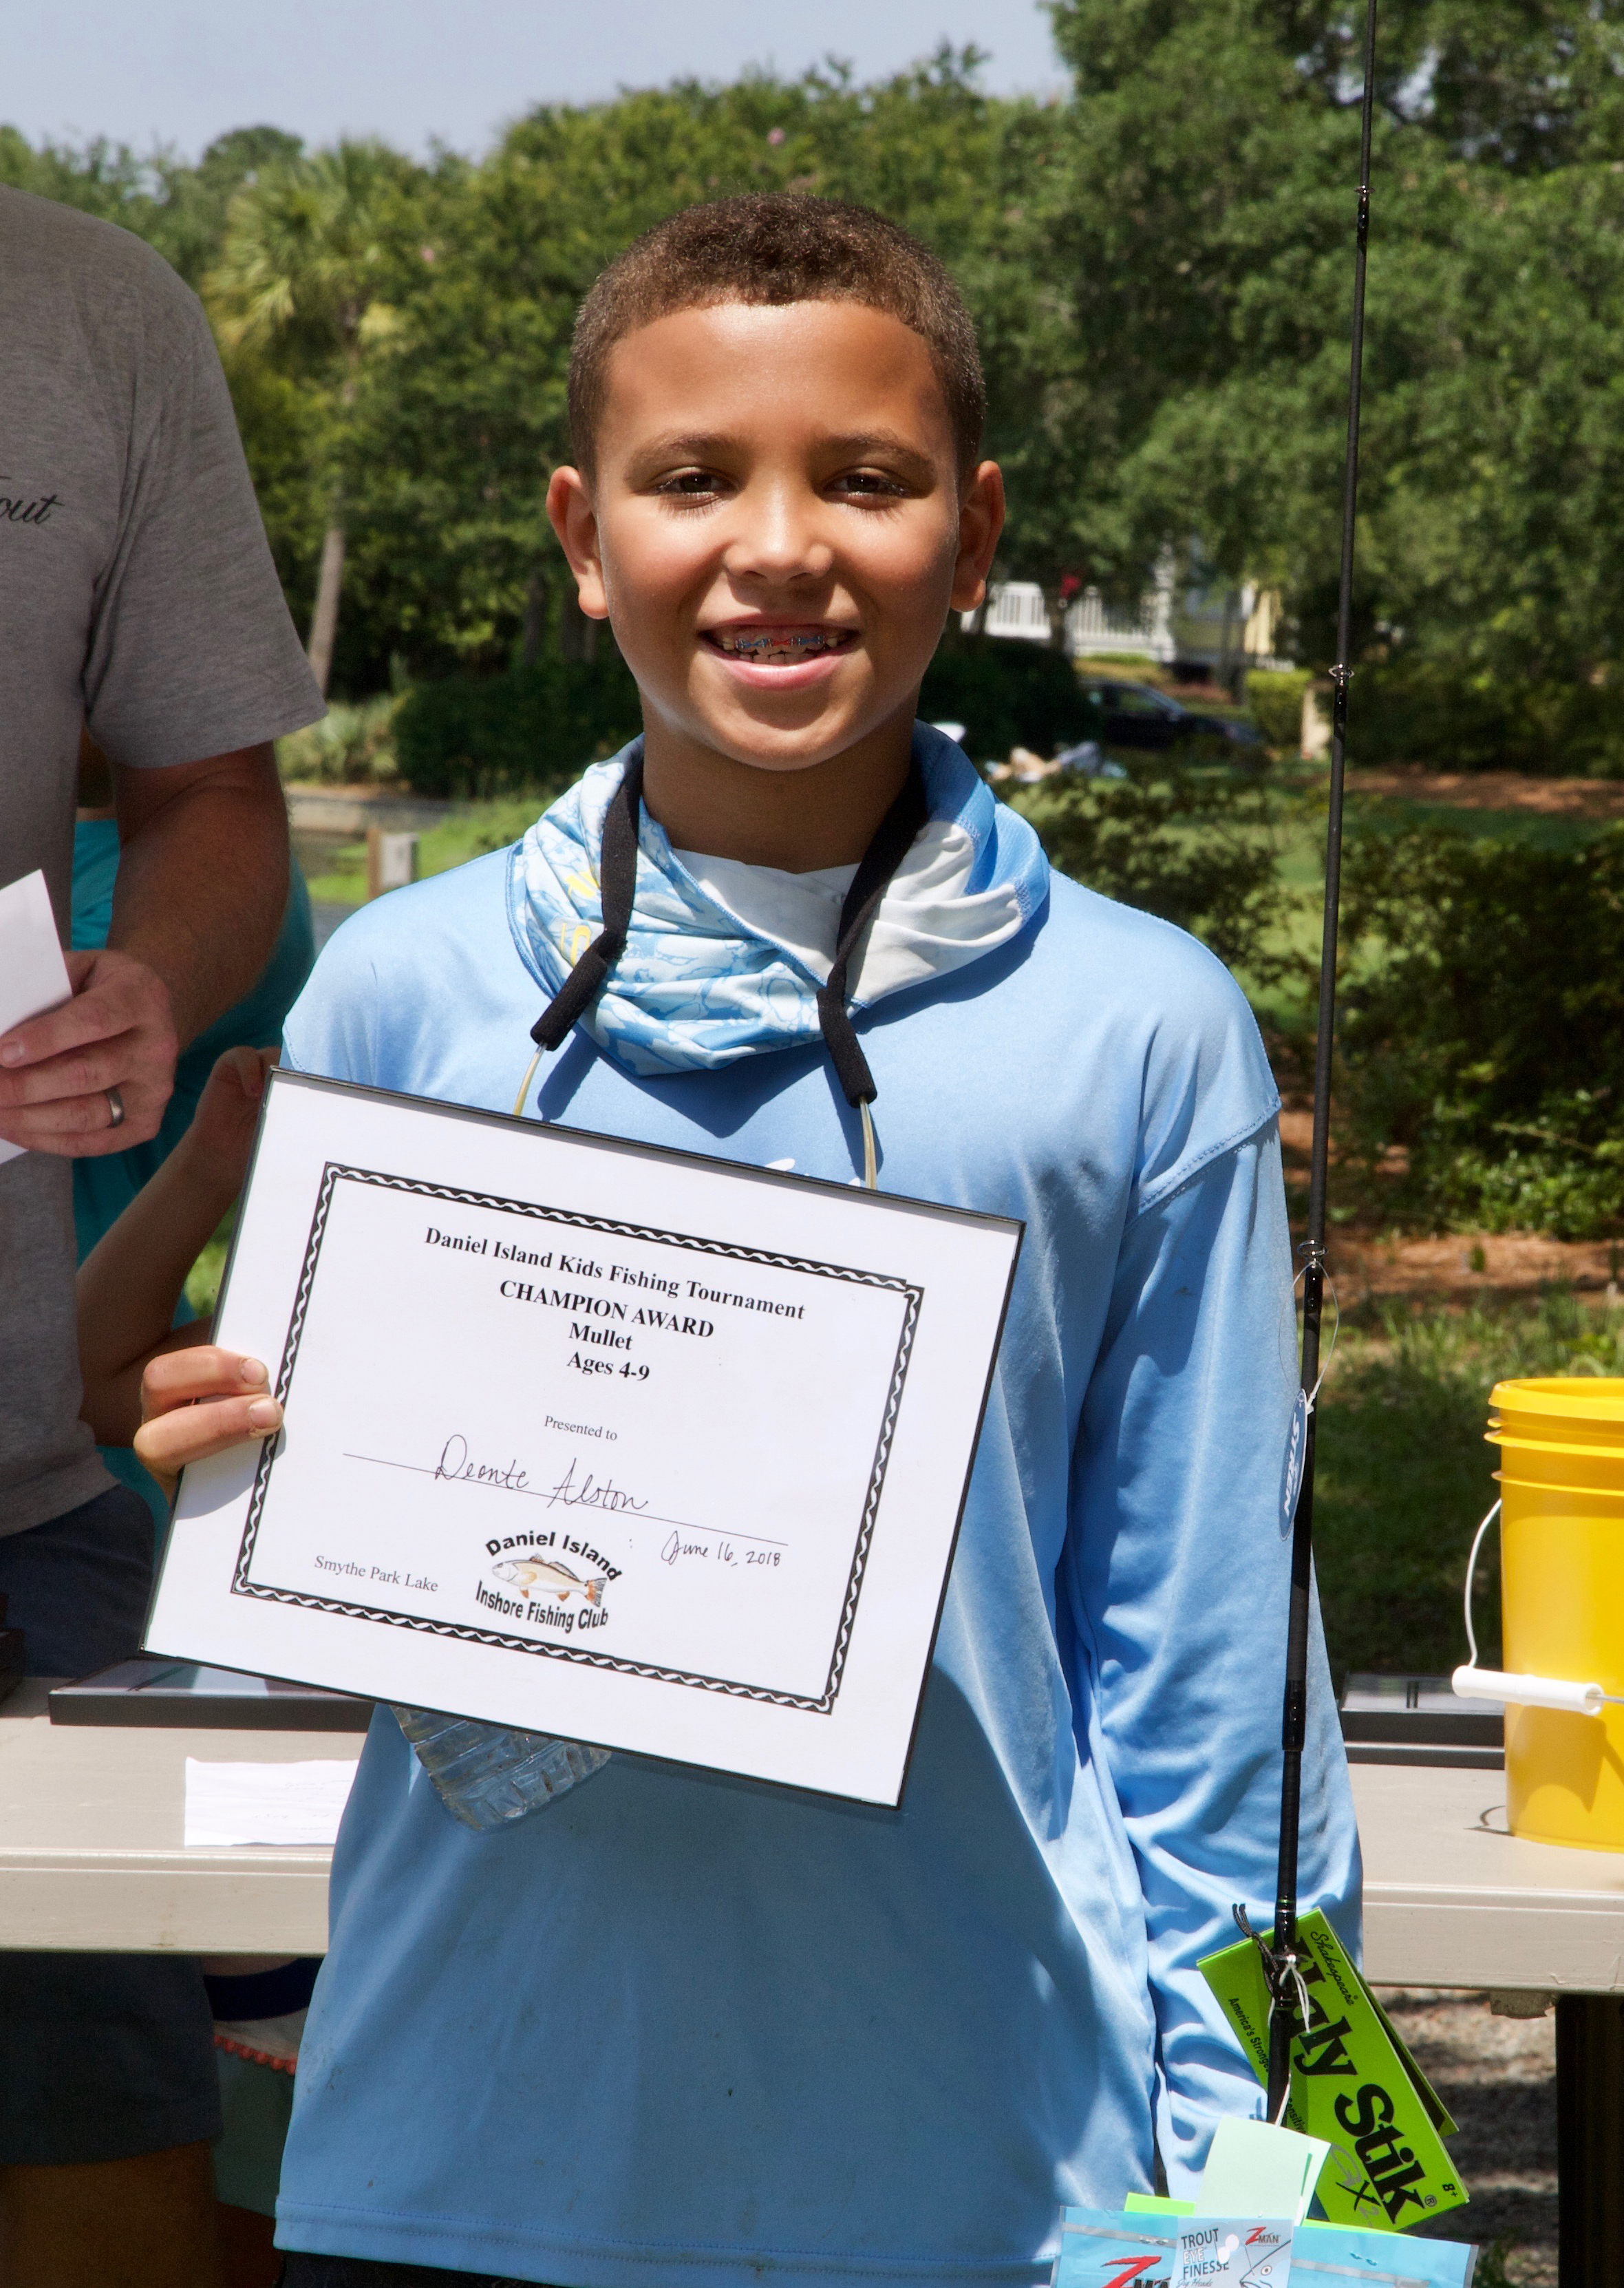 Deonte Alston – Champion Award, Mullet, Ages 4-9.